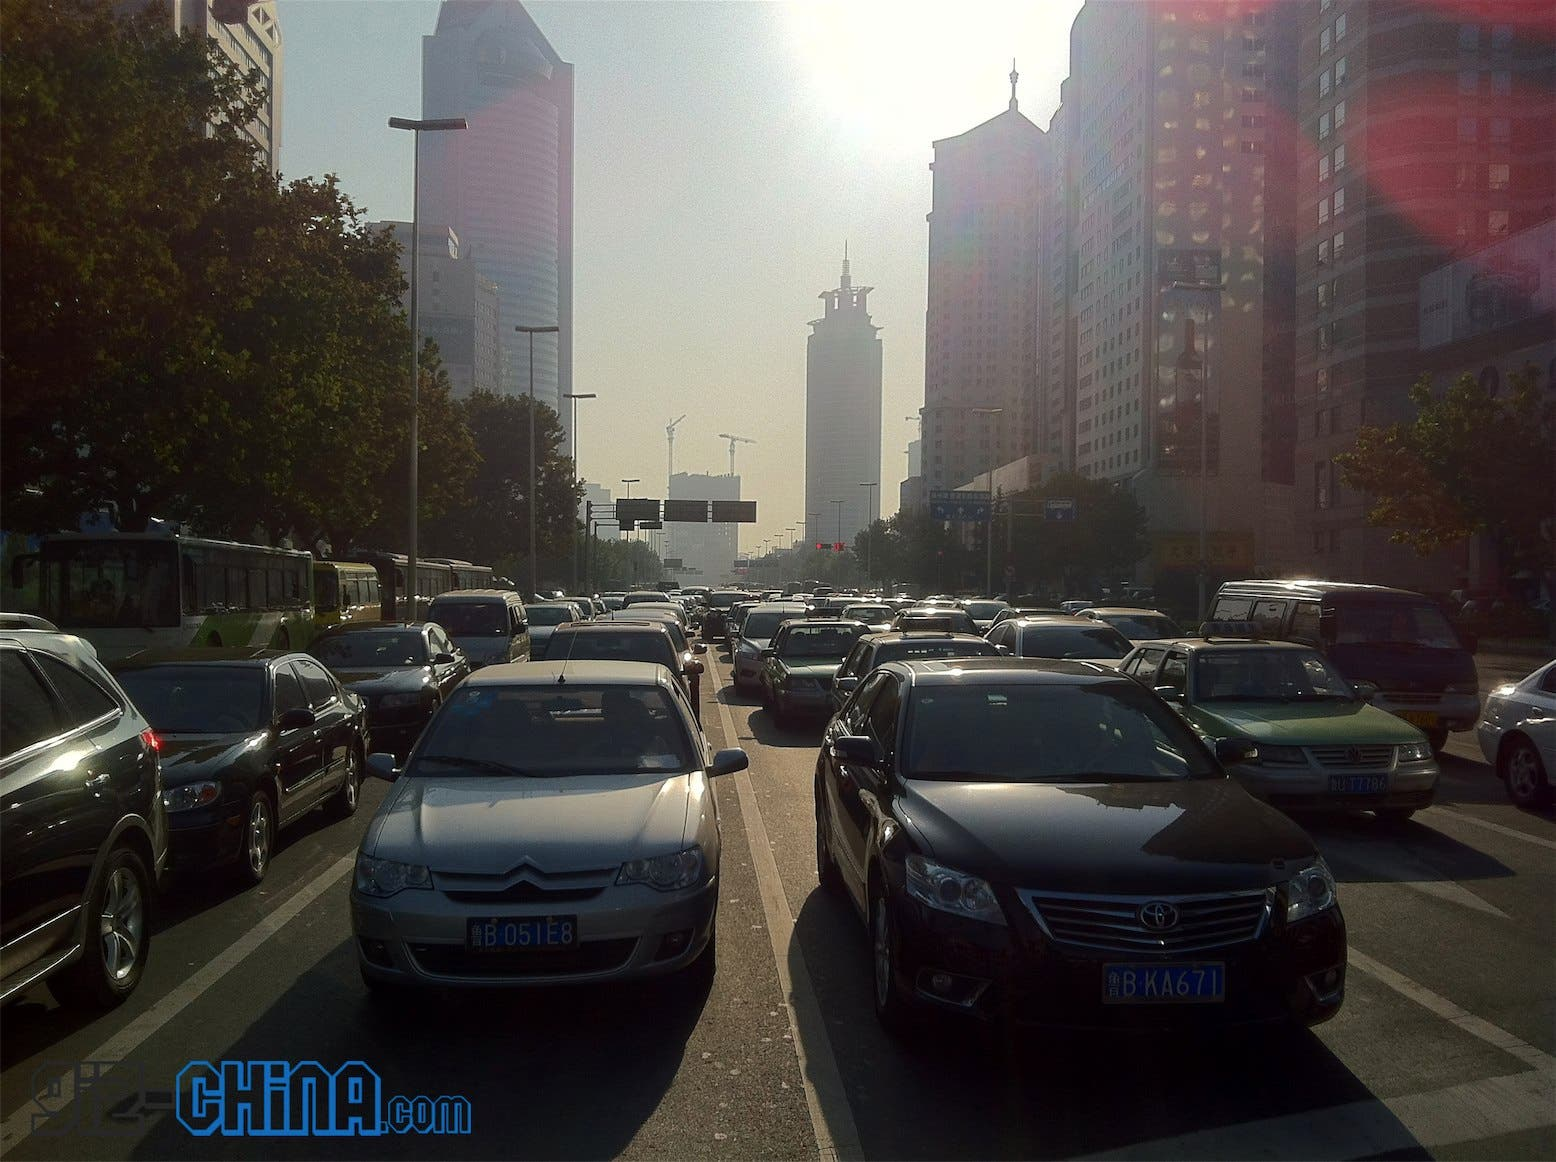 Heavy traffic during China's 'No Car Day' today.